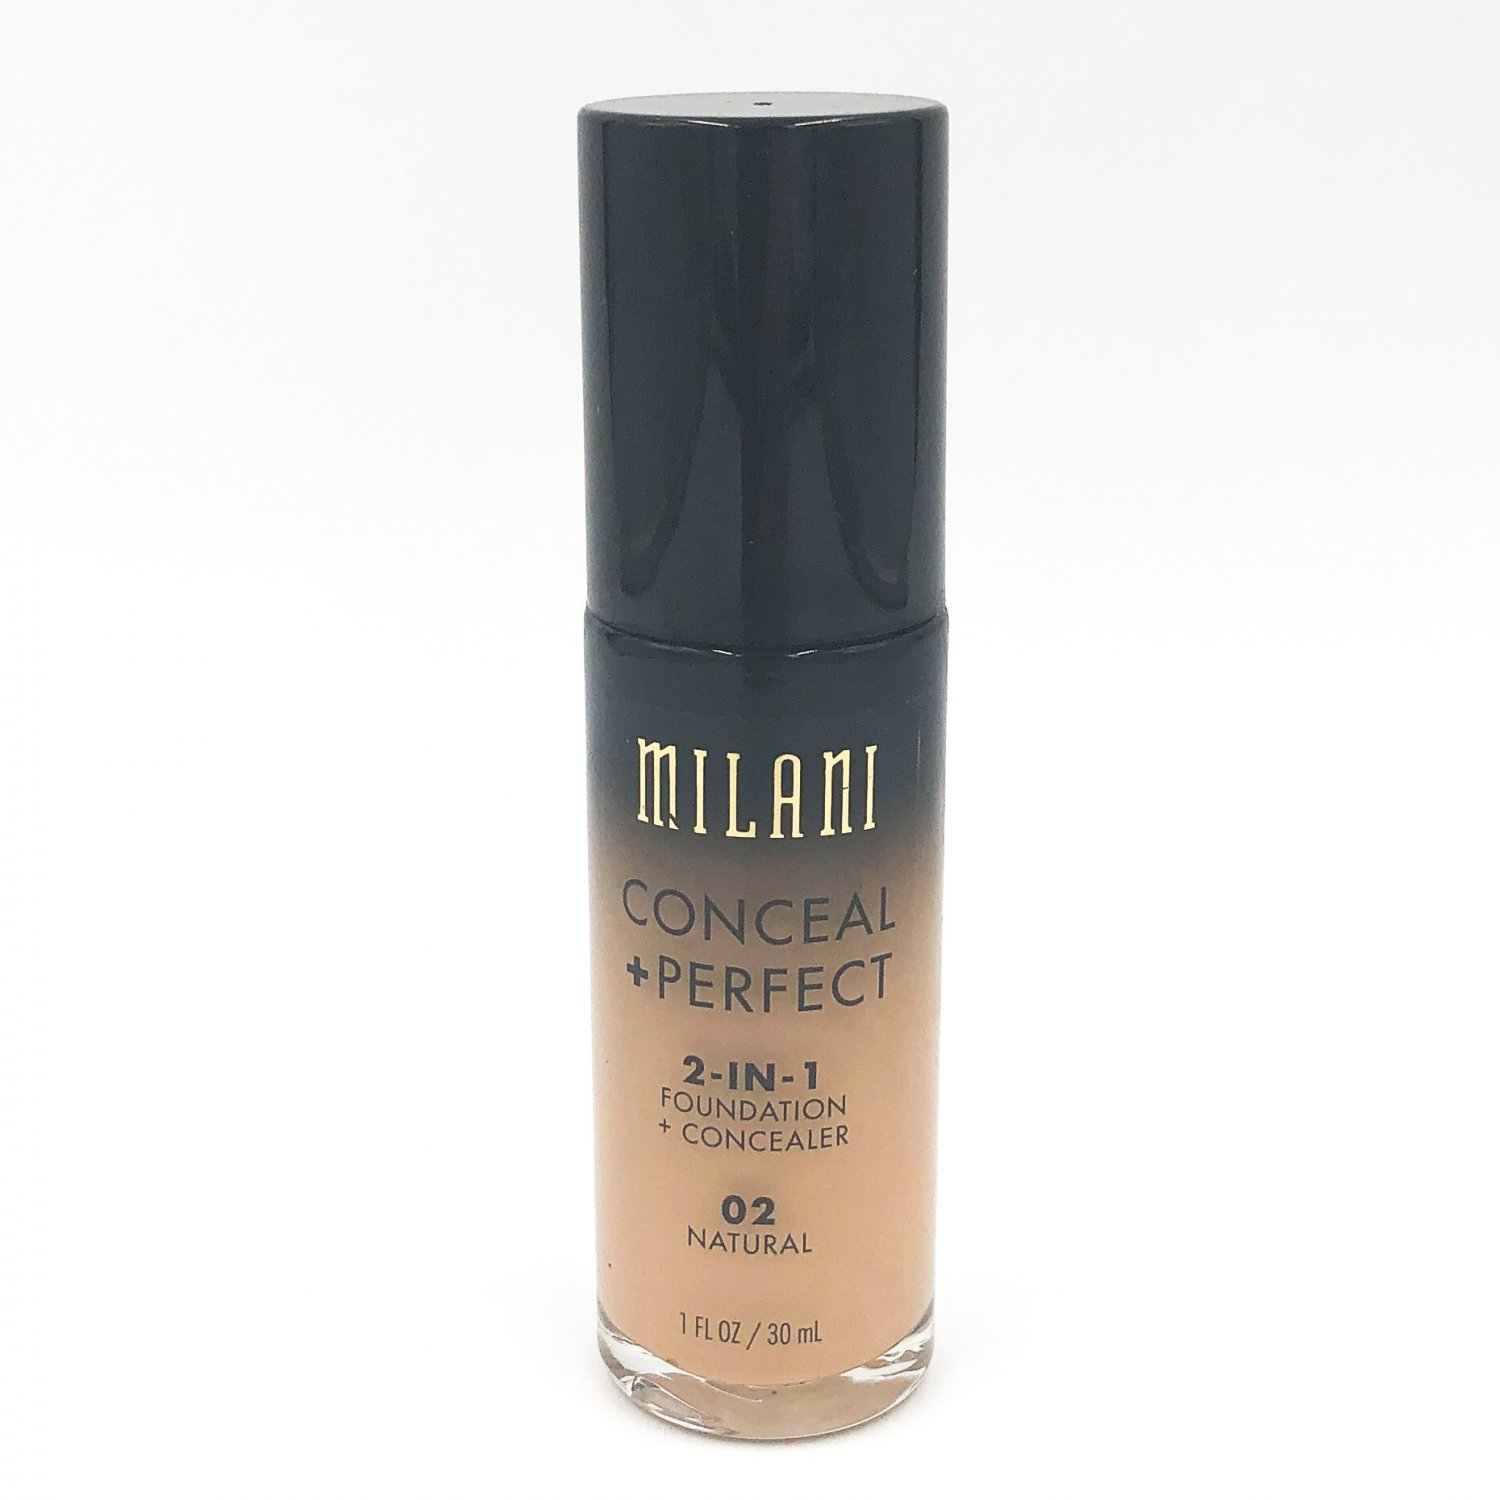 Milani Conceal + Perfect 2-in-1 Foundation + Concealer 02 Natural